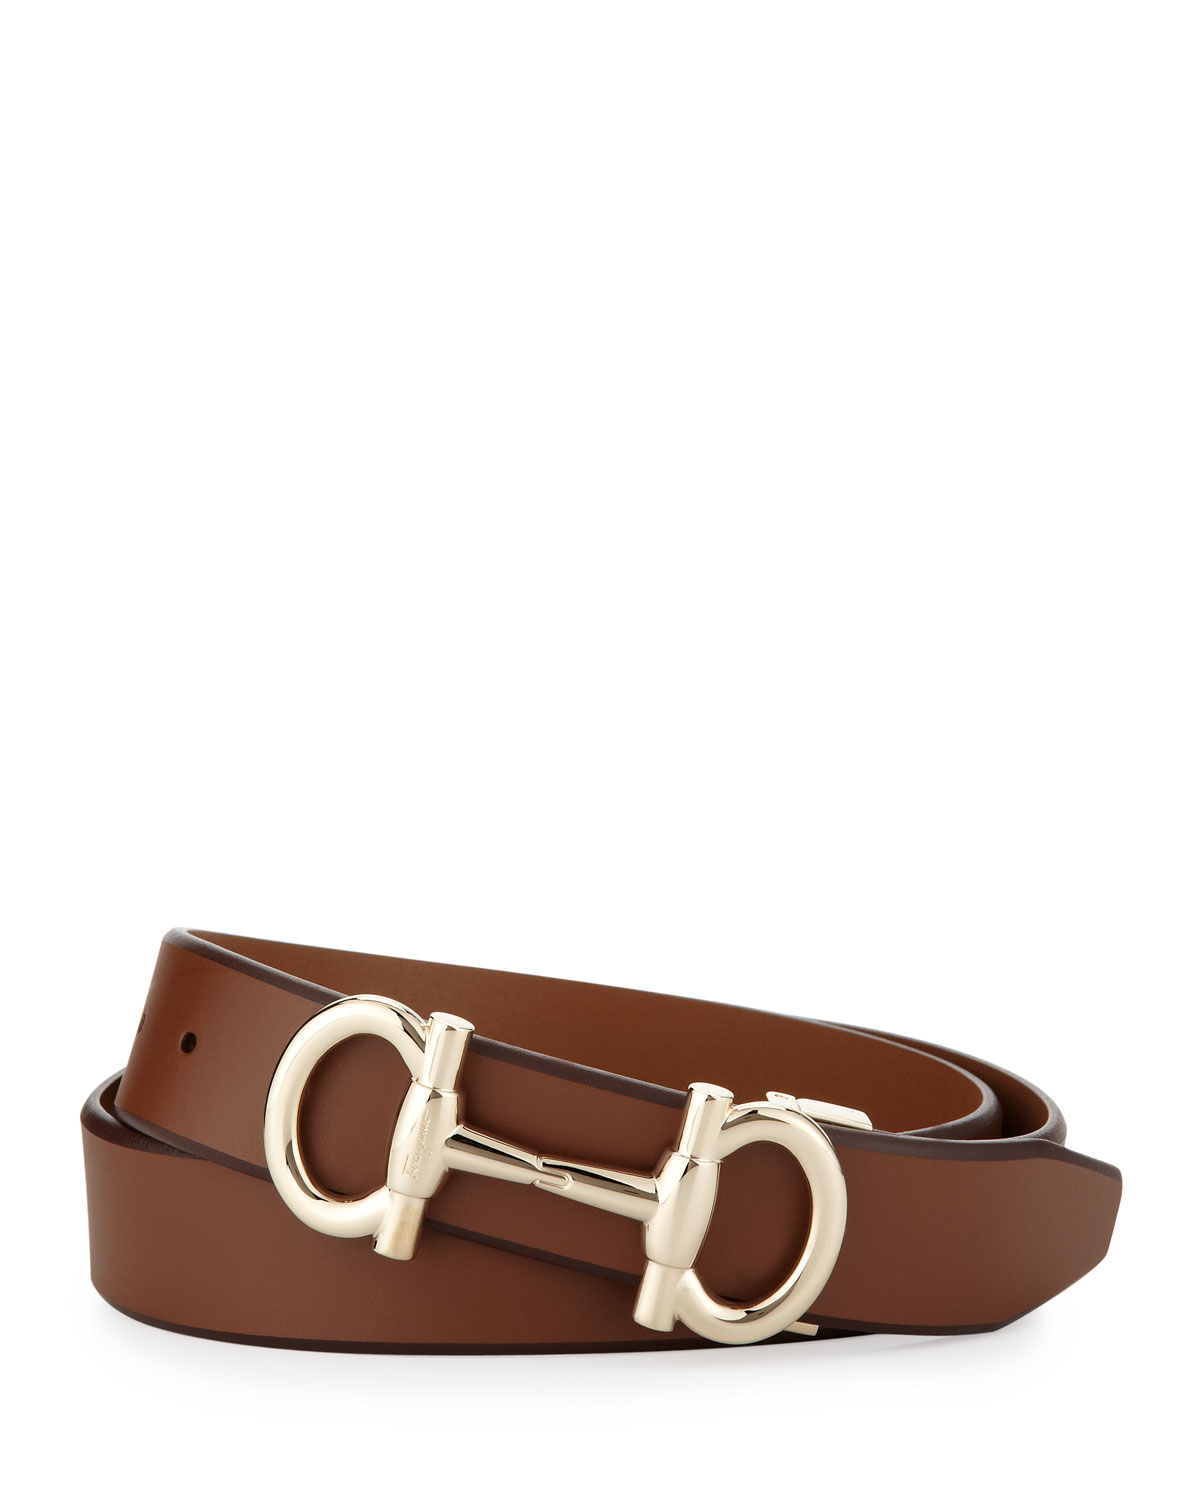 ferragamo gancini bit leather belt in brown for lyst